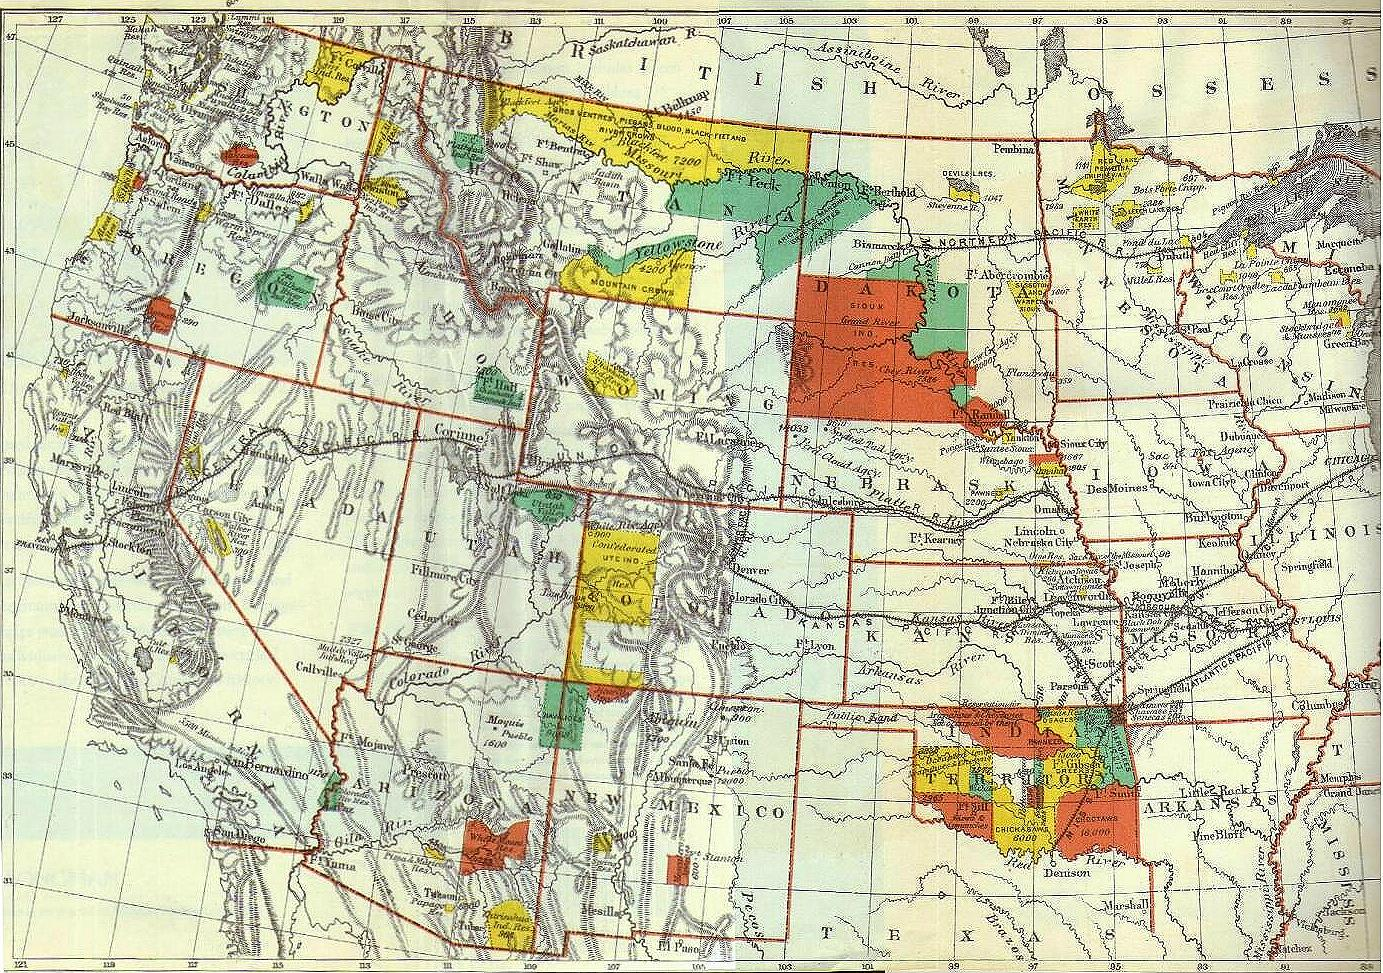 Native American Documents Project - Us indian reservations map